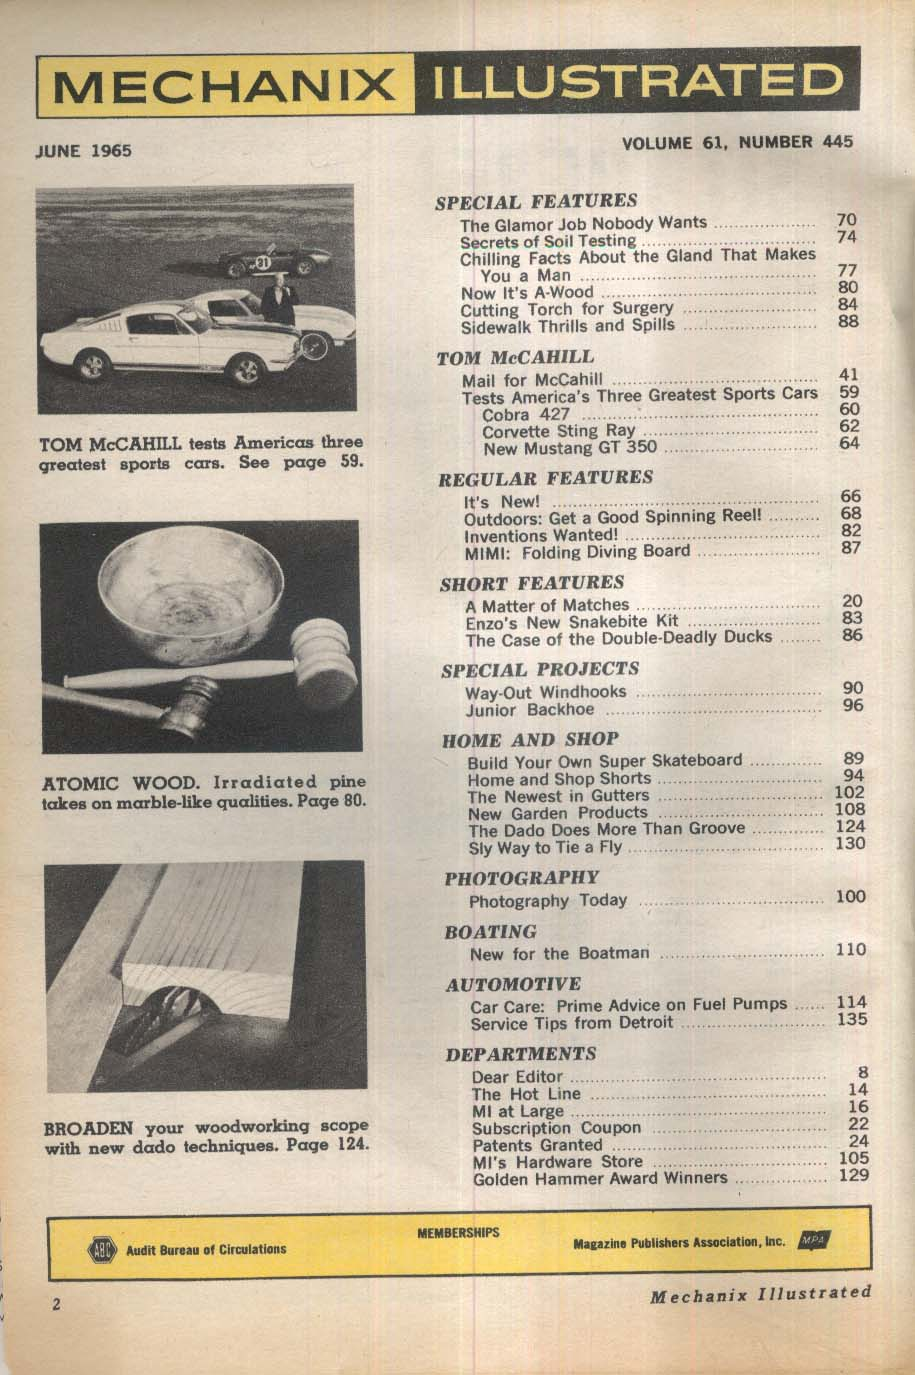 MECHANIX ILLUSTRATED Cobra 427 Corvette Sting Ray Mustang GT 350 tests 6 1965